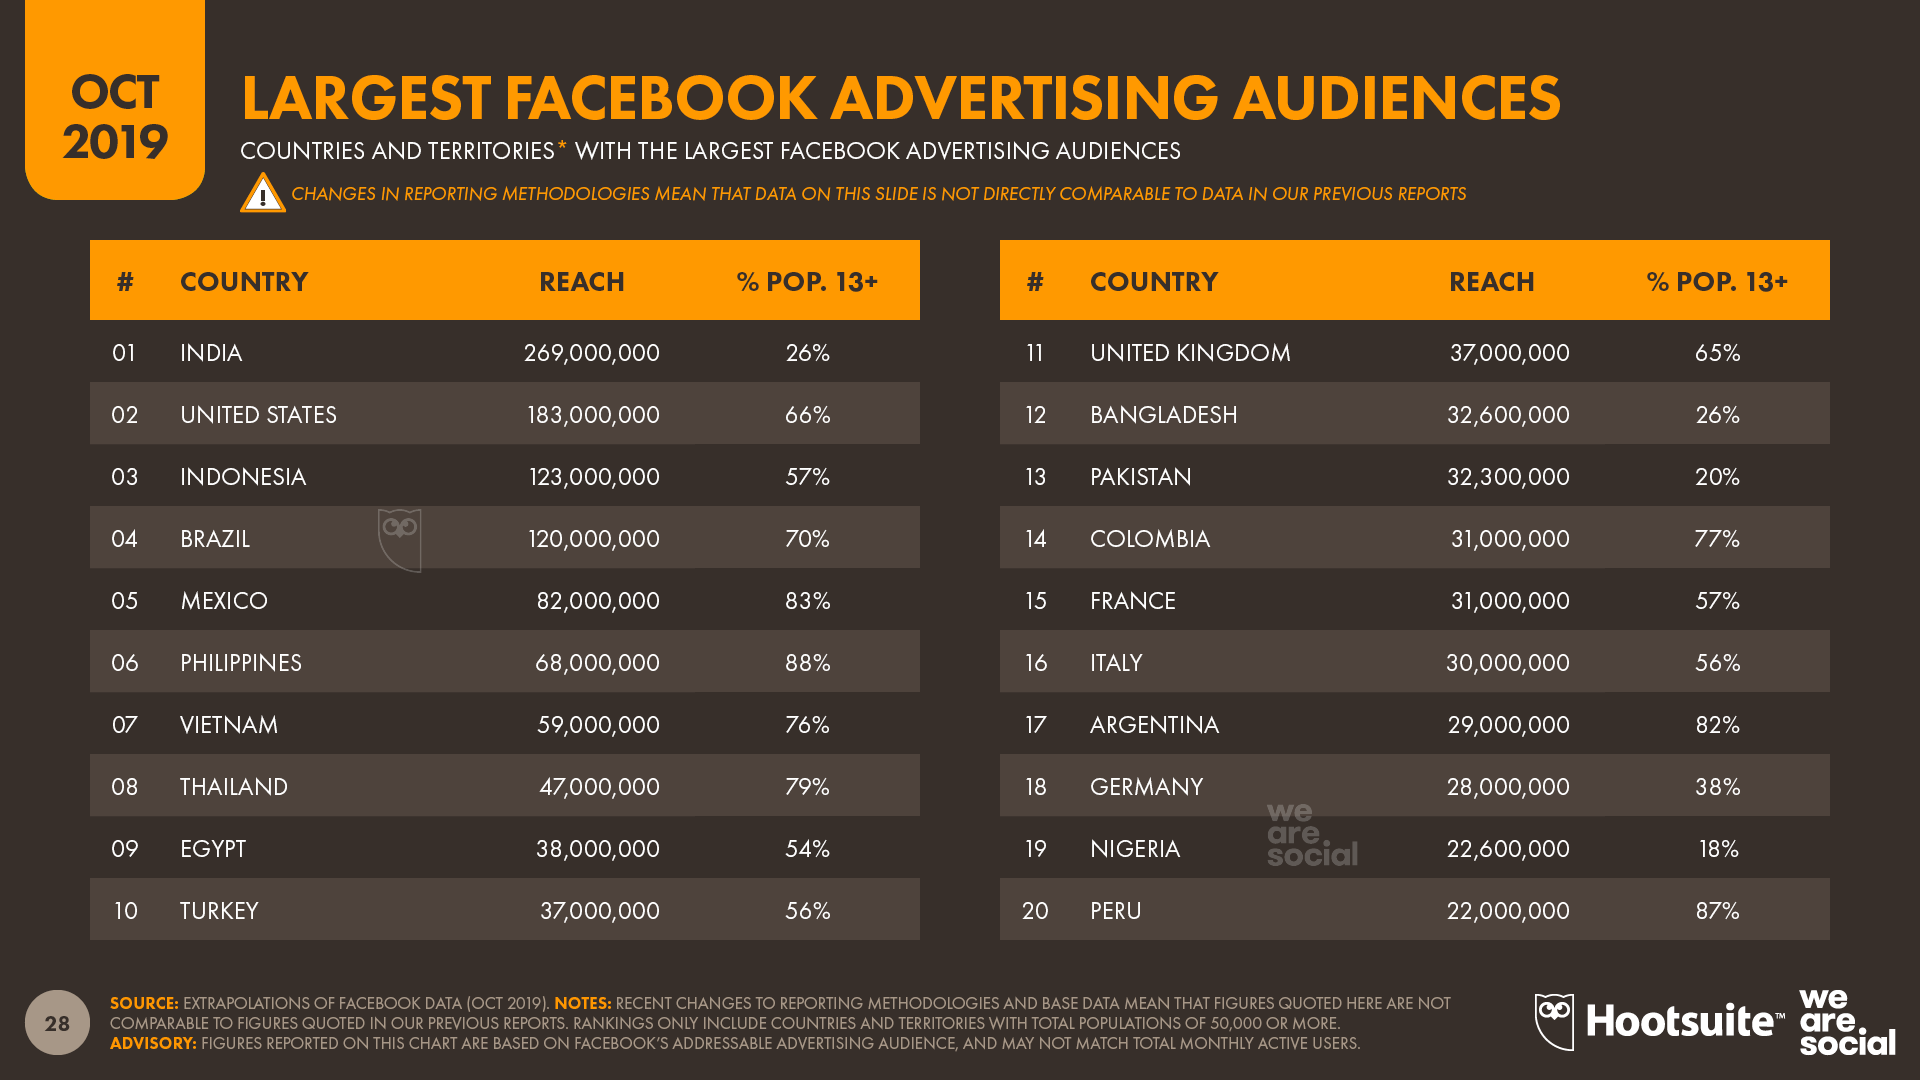 Facebook's Largest Advertising Audiences October 2019 DataReportal